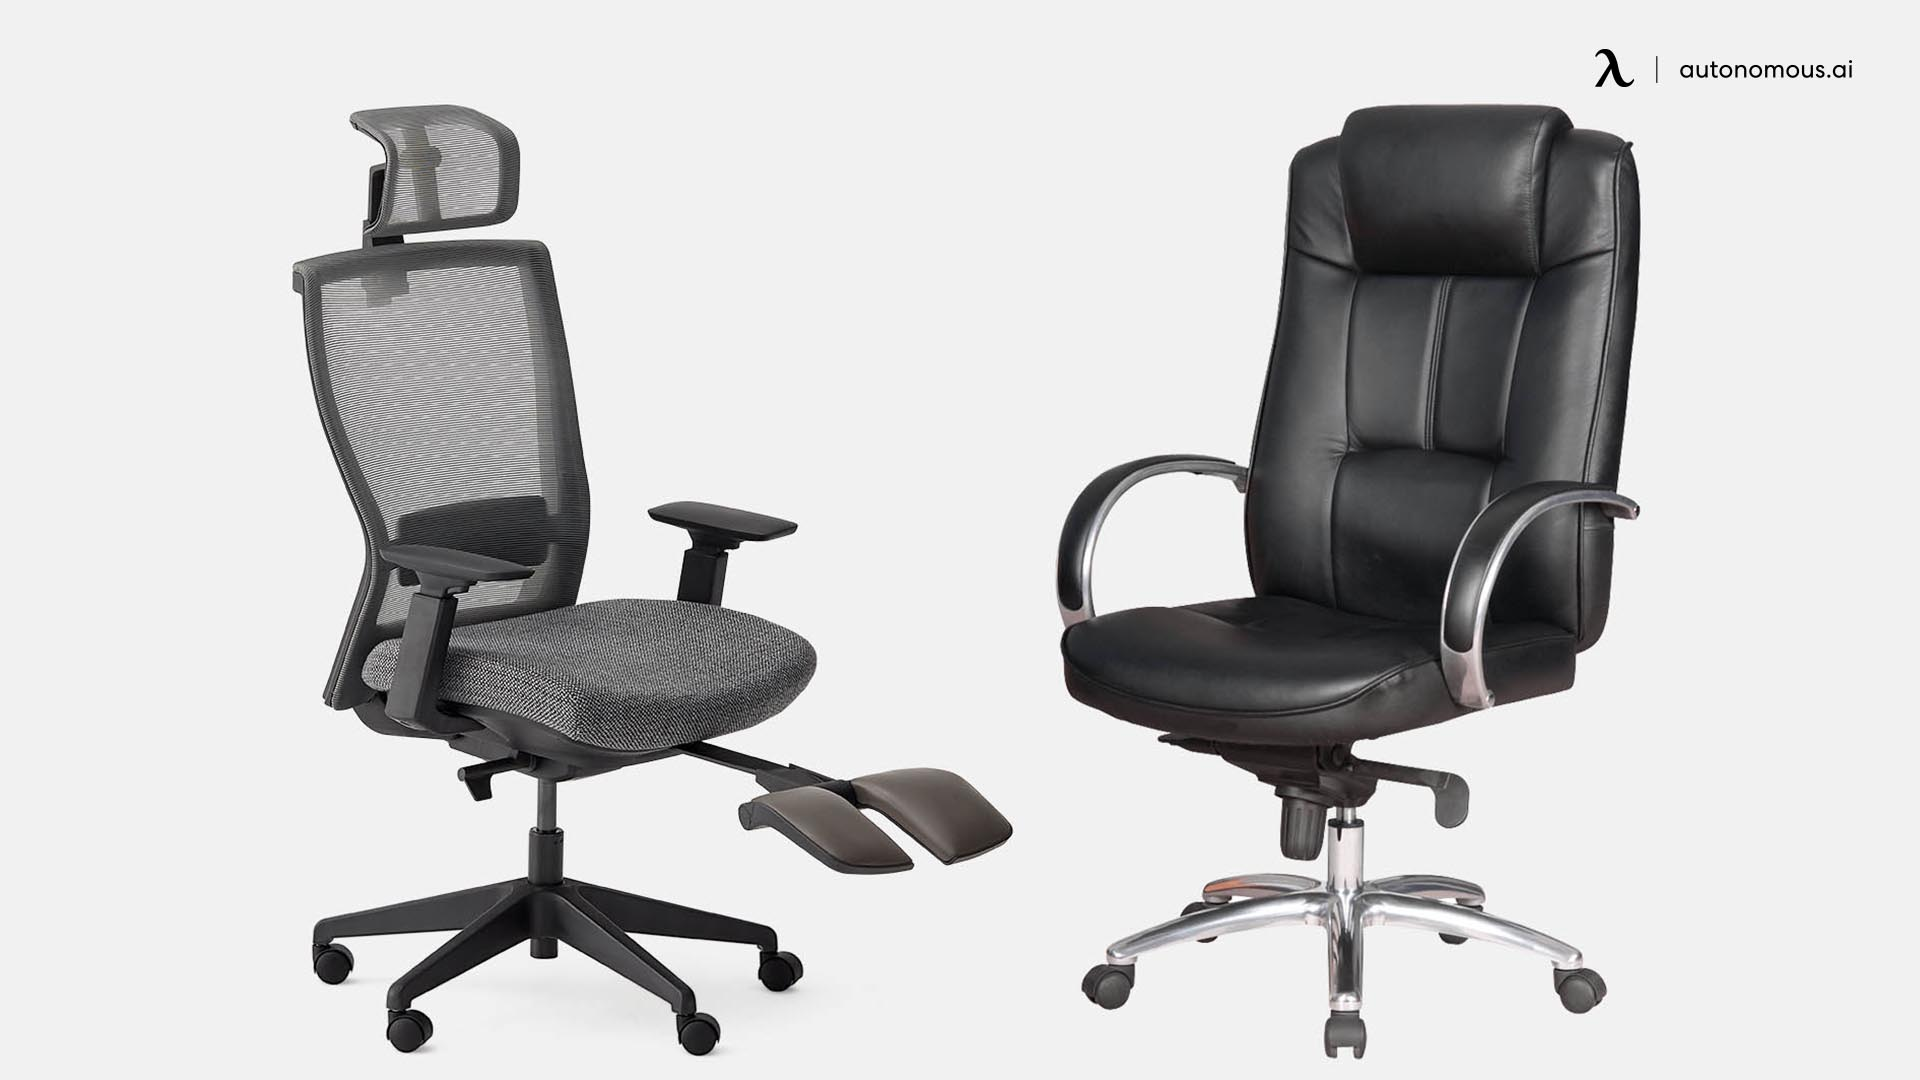 Why are mesh office chairs better than leather?